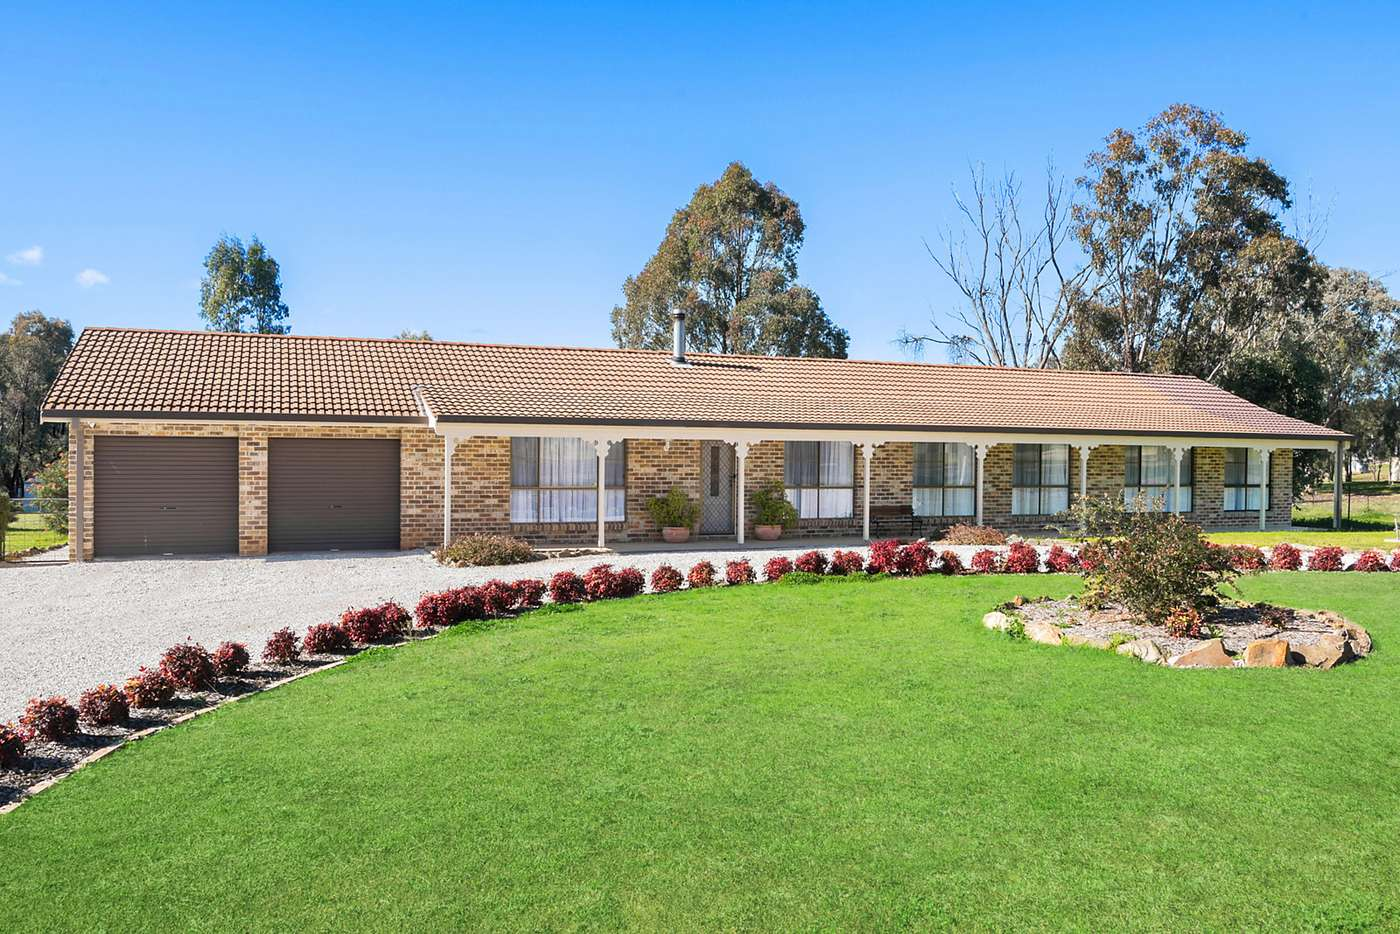 Main view of Homely house listing, 159 Robertson Road, Mudgee NSW 2850